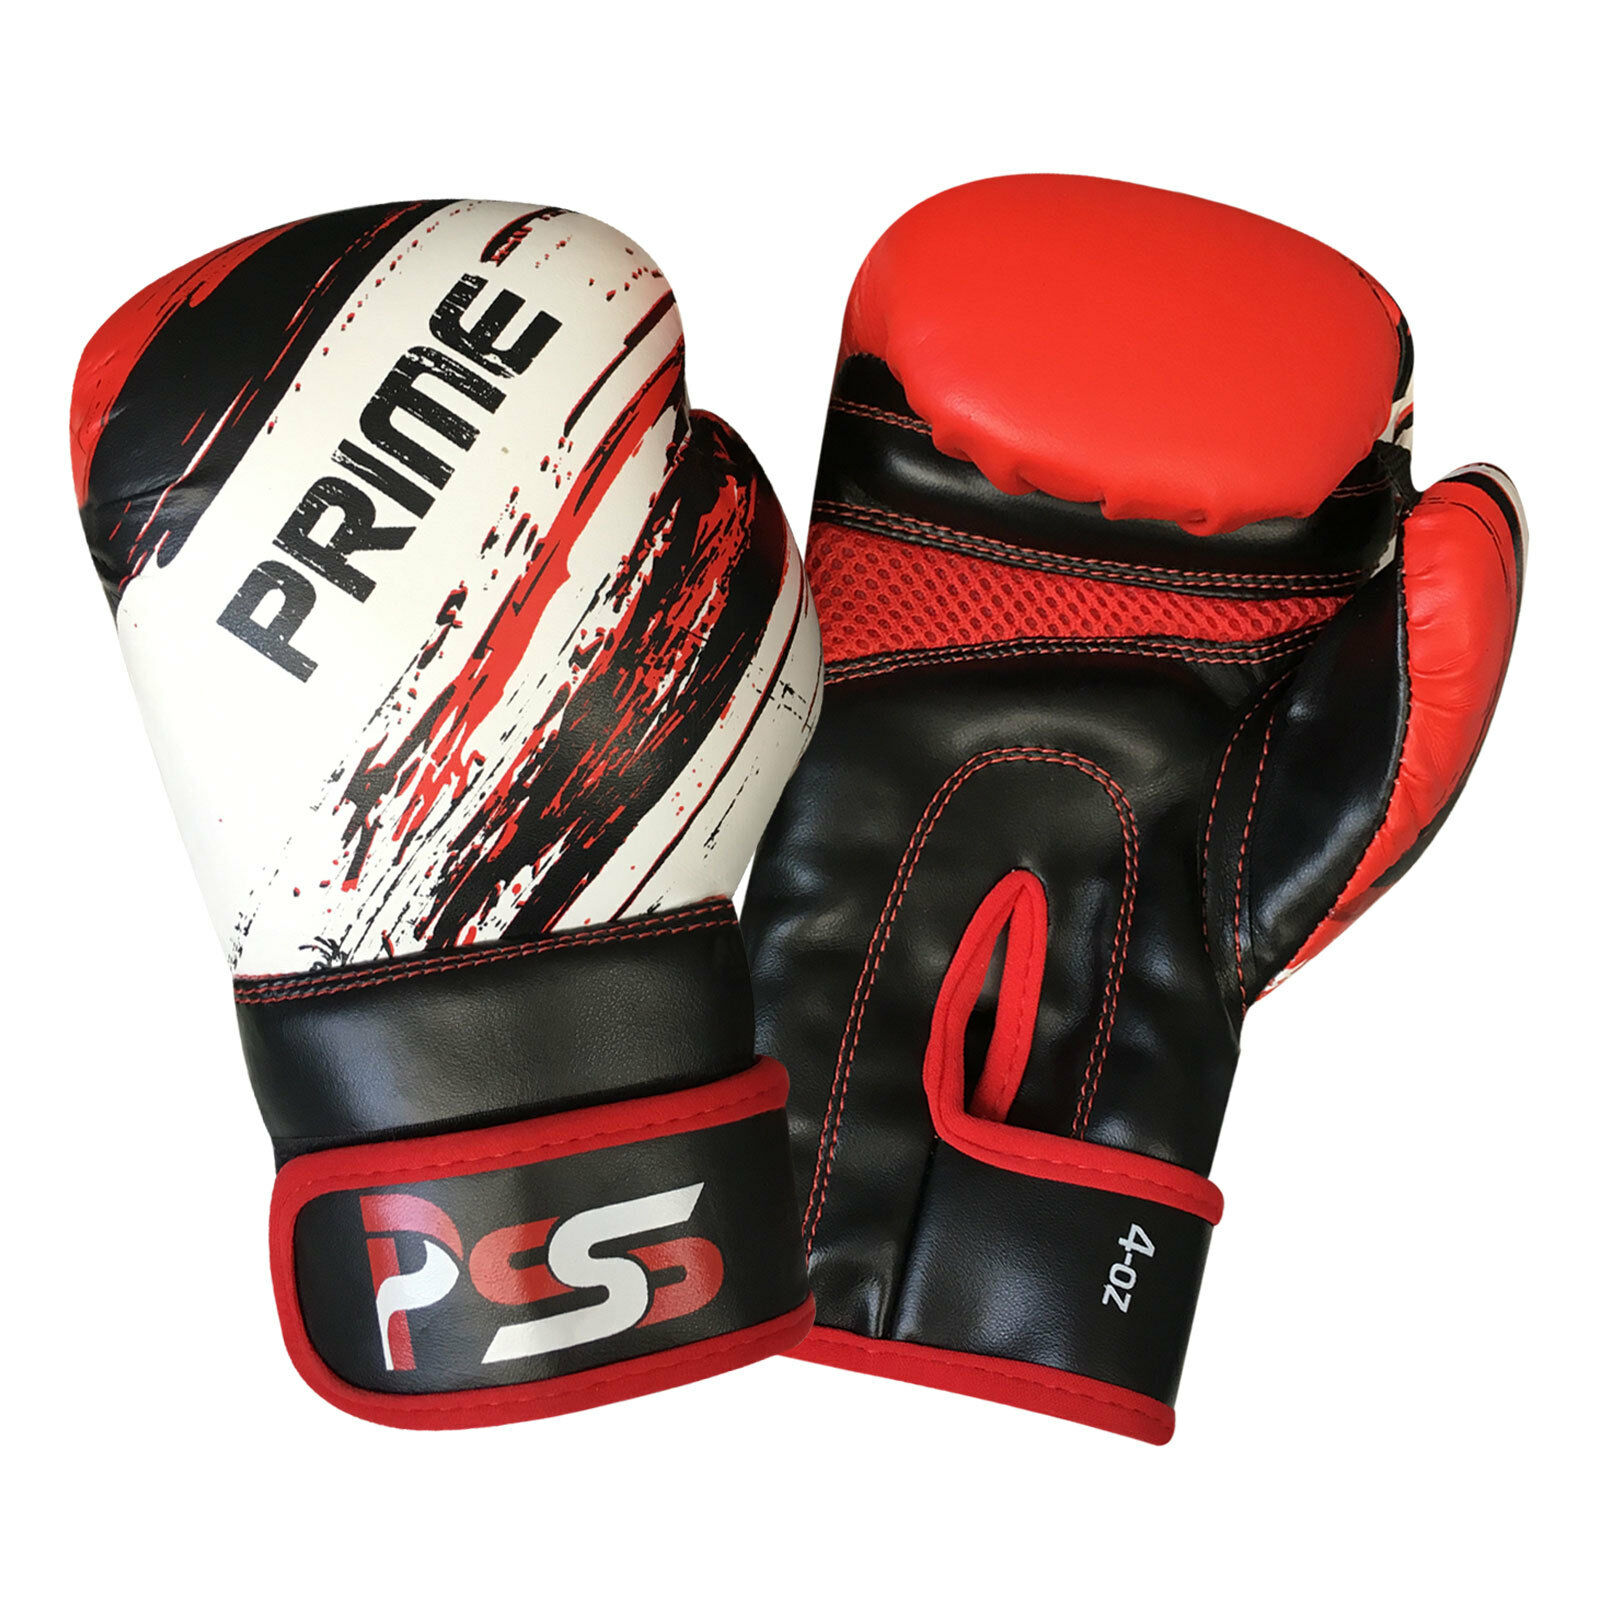 ROT Kids Uniform Set Pcs Pcs Pcs Boxing Uniform Boxing Gloves 1012 Focus Pad 1106 Set-13 42bd76